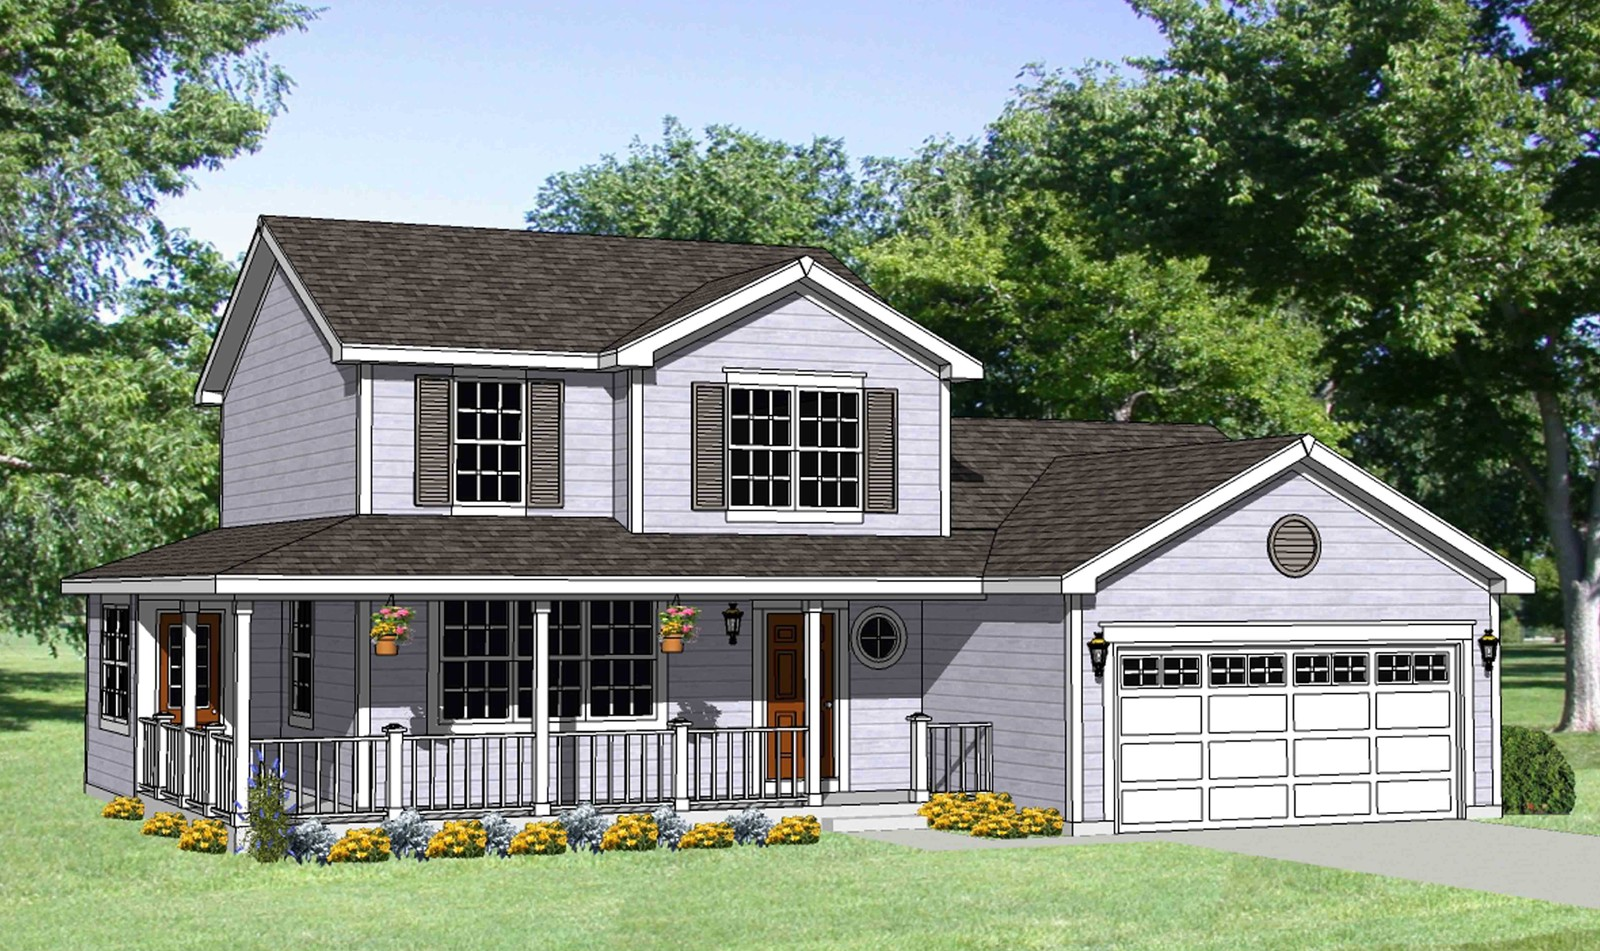 Country House Plan With Wrap-Around Porch